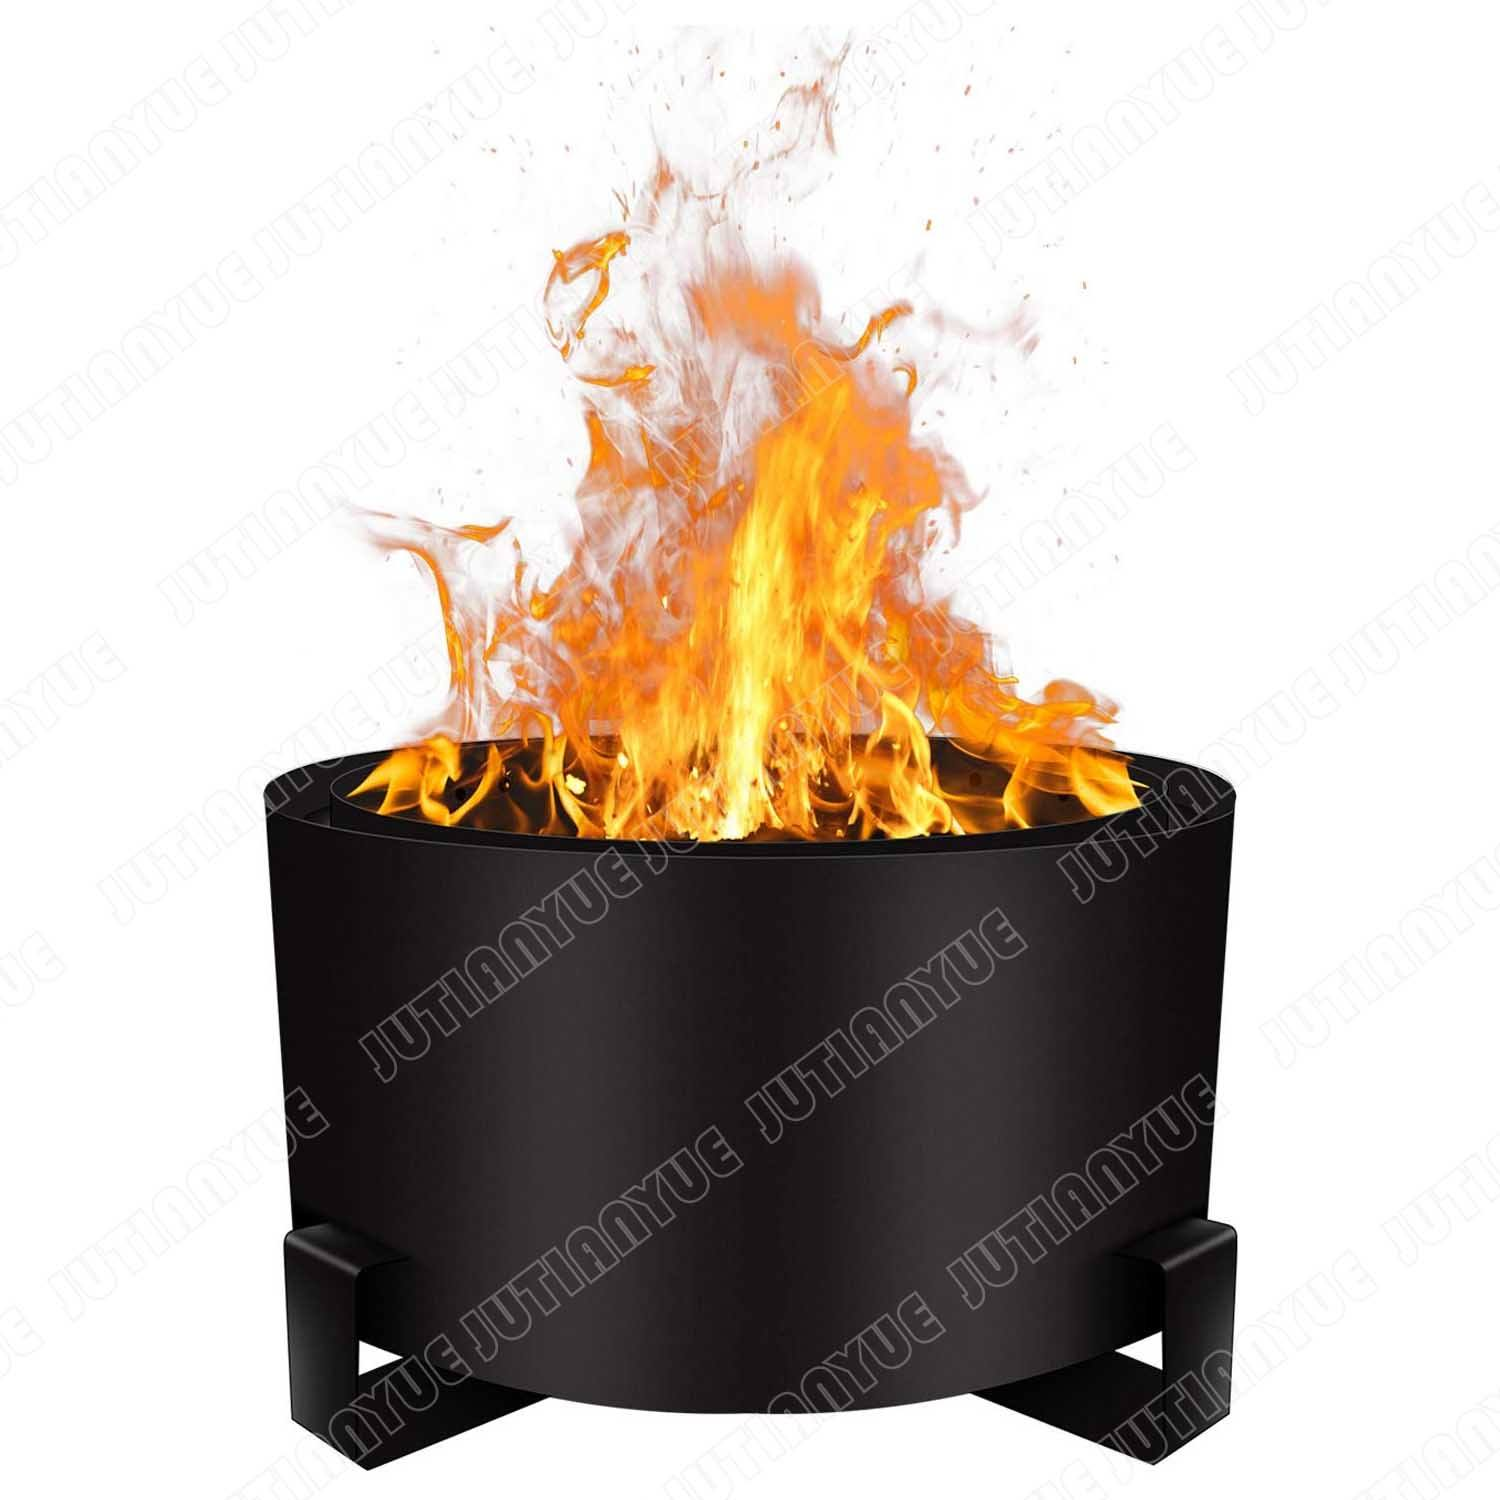 Patio Vuurkorf Bonfire Pit Grote 23.6 Inch Hout Pellet Vuurkorf <span class=keywords><strong>Outdoor</strong></span> Rookloze Firepit Houtgestookte Lage Rook Draagbare firepi